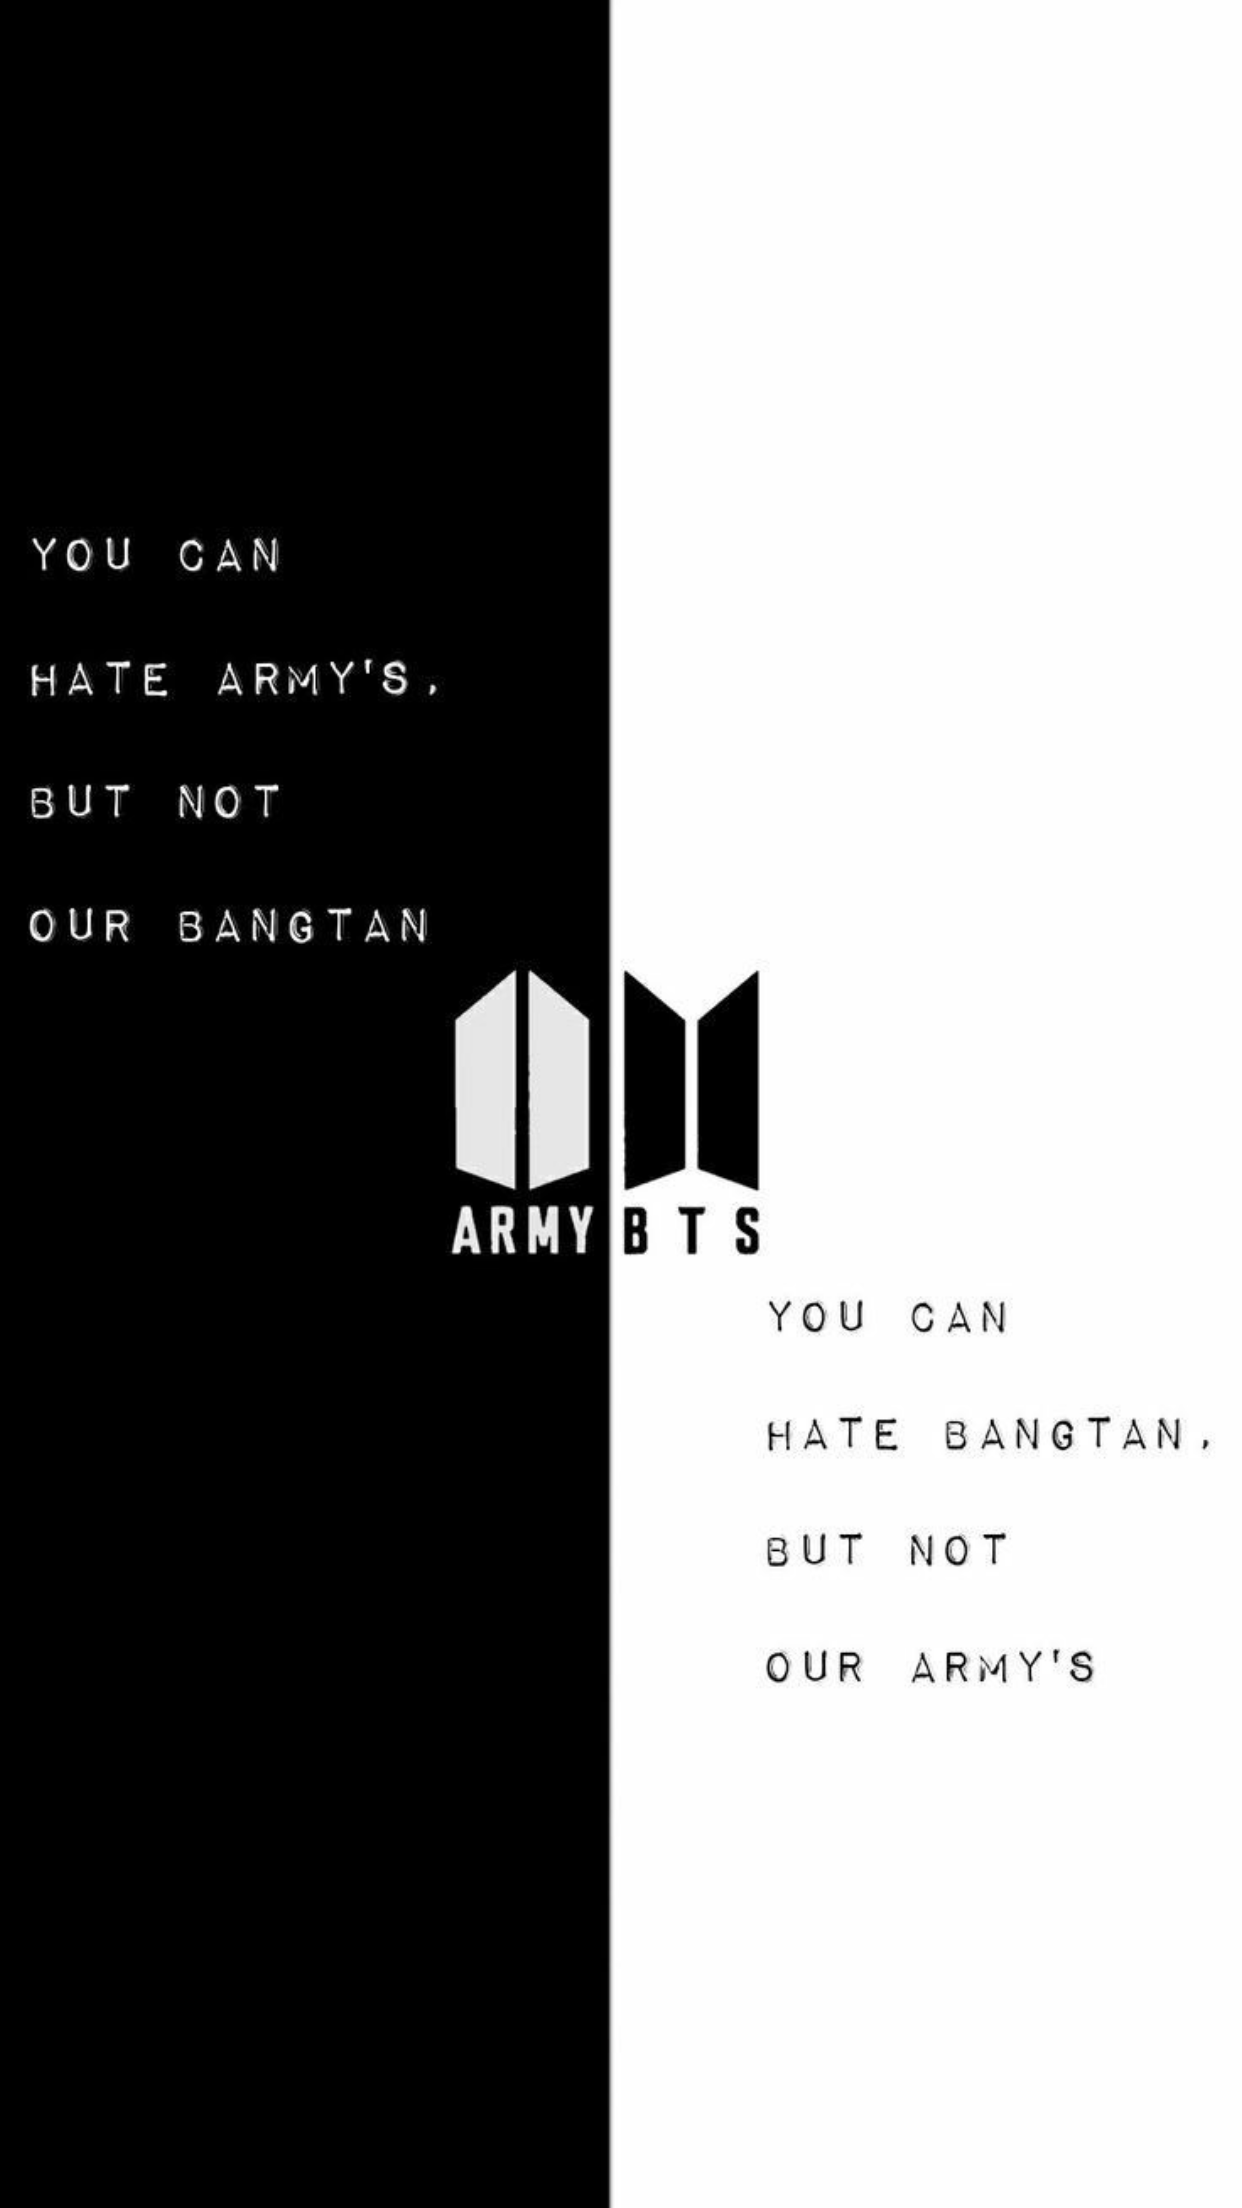 Army And Bts Is Not Only An Idol And Fan Relationship But A Family